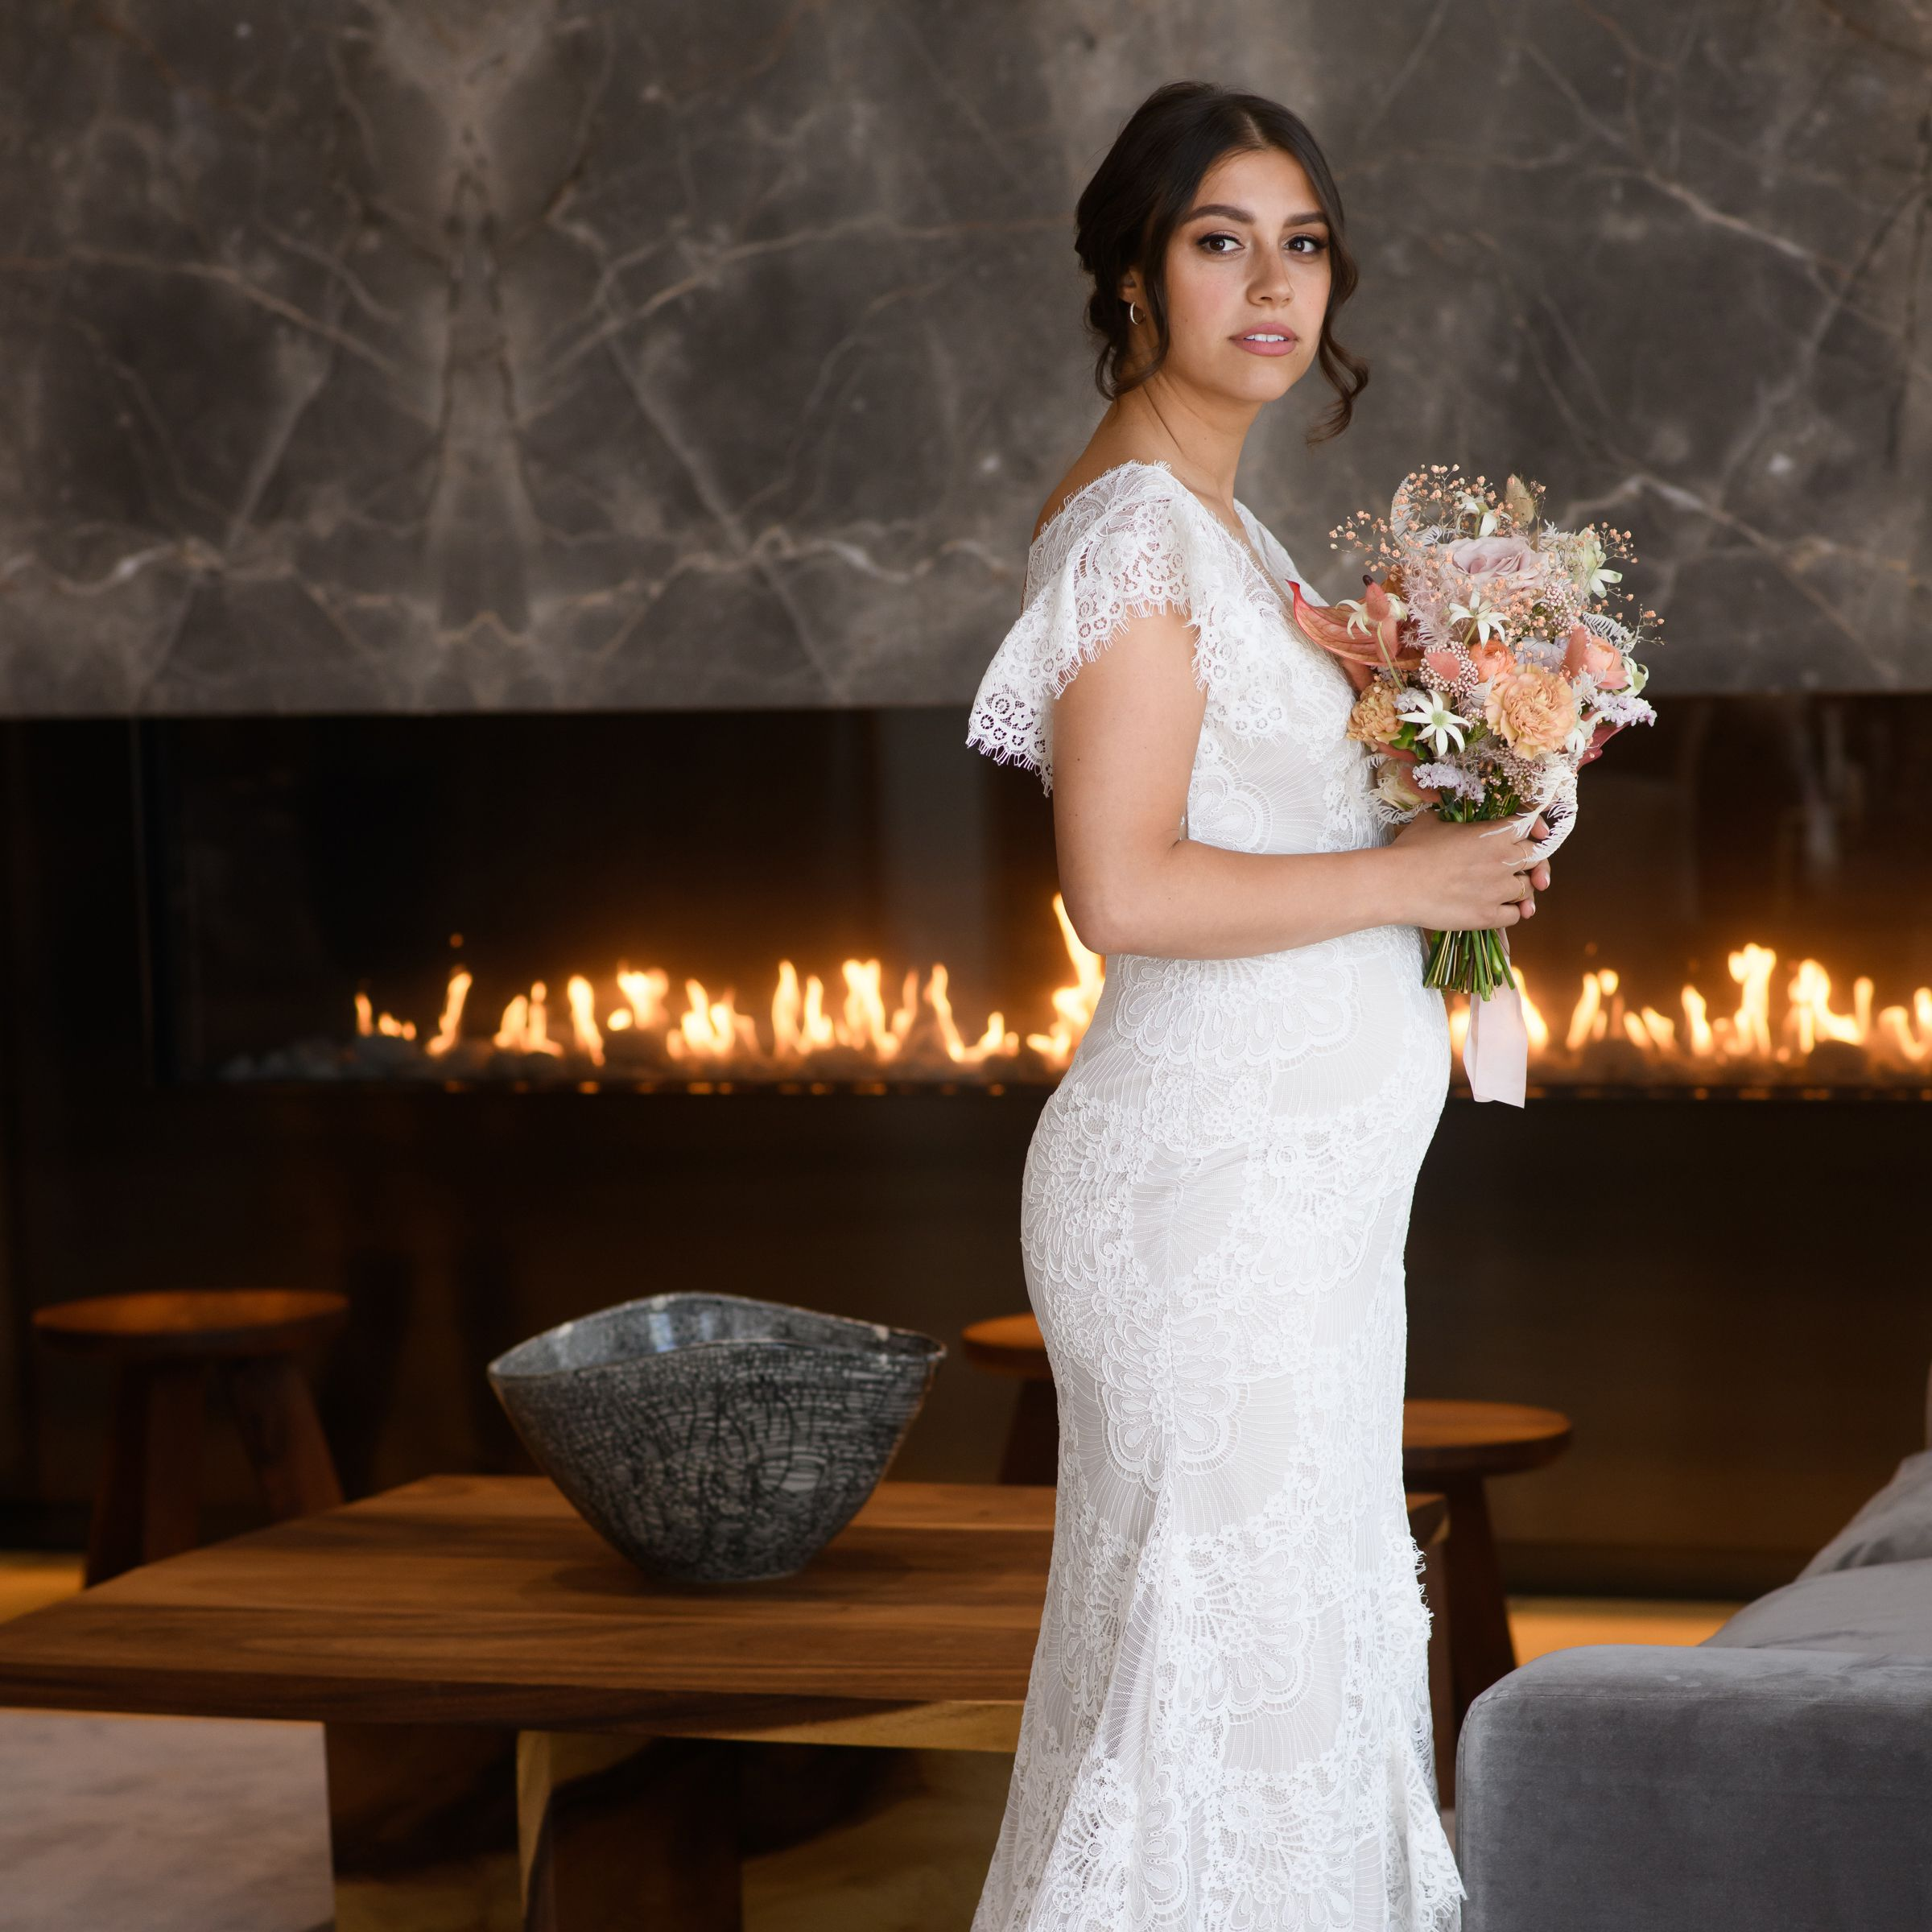 How to Find the Perfect Maternity Wedding Dress